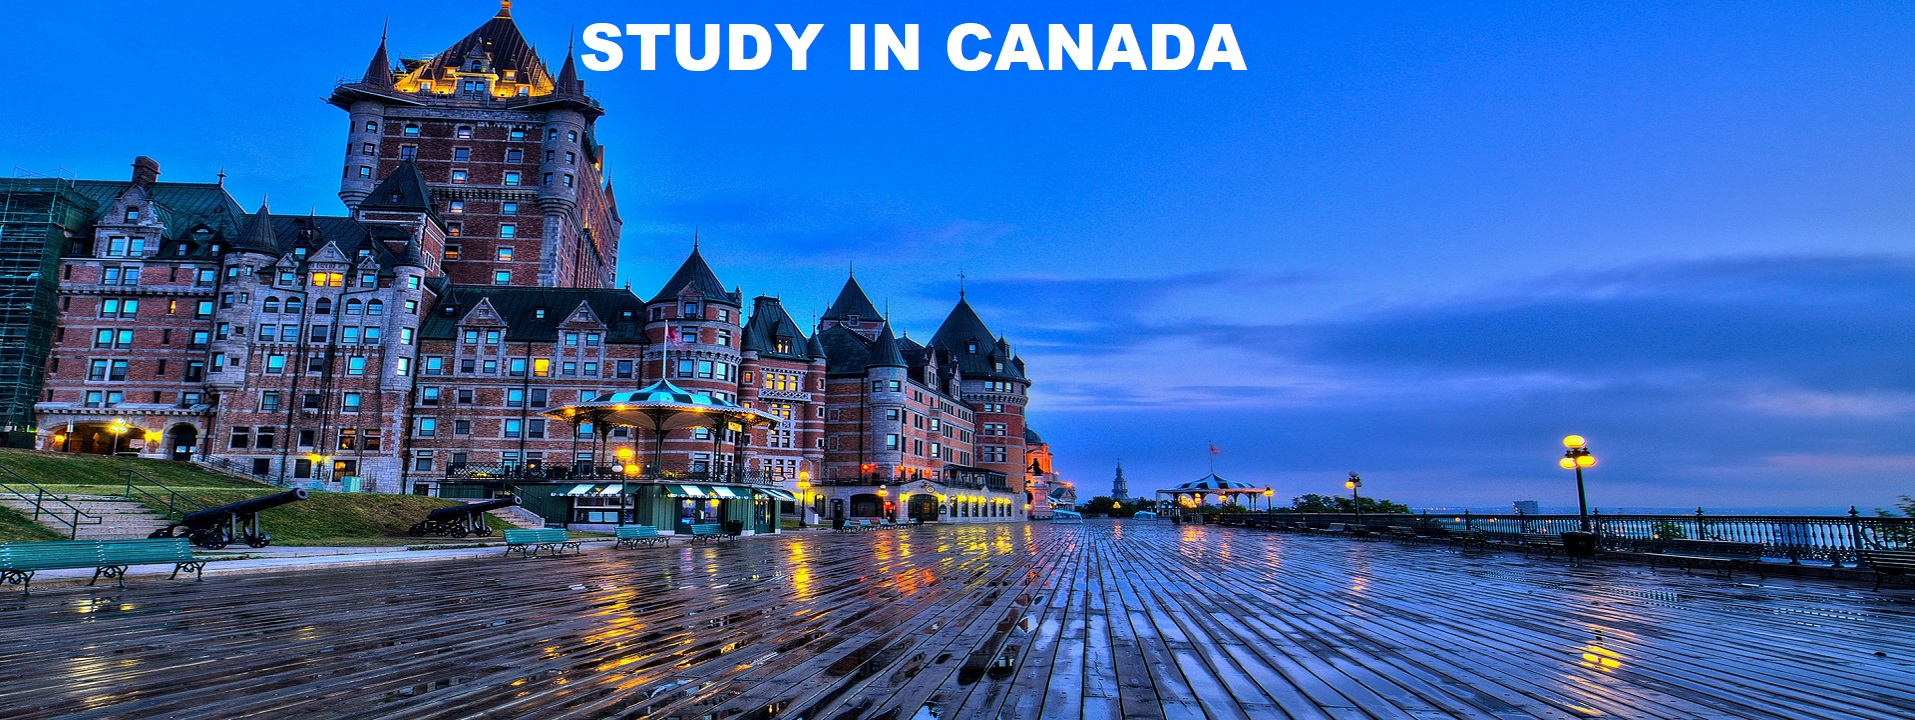 MBBS Study Canada | Abroad Education Consultants Canada | Canada student visa consultants Delhi | Masters Study Canada | Study MBA Canada